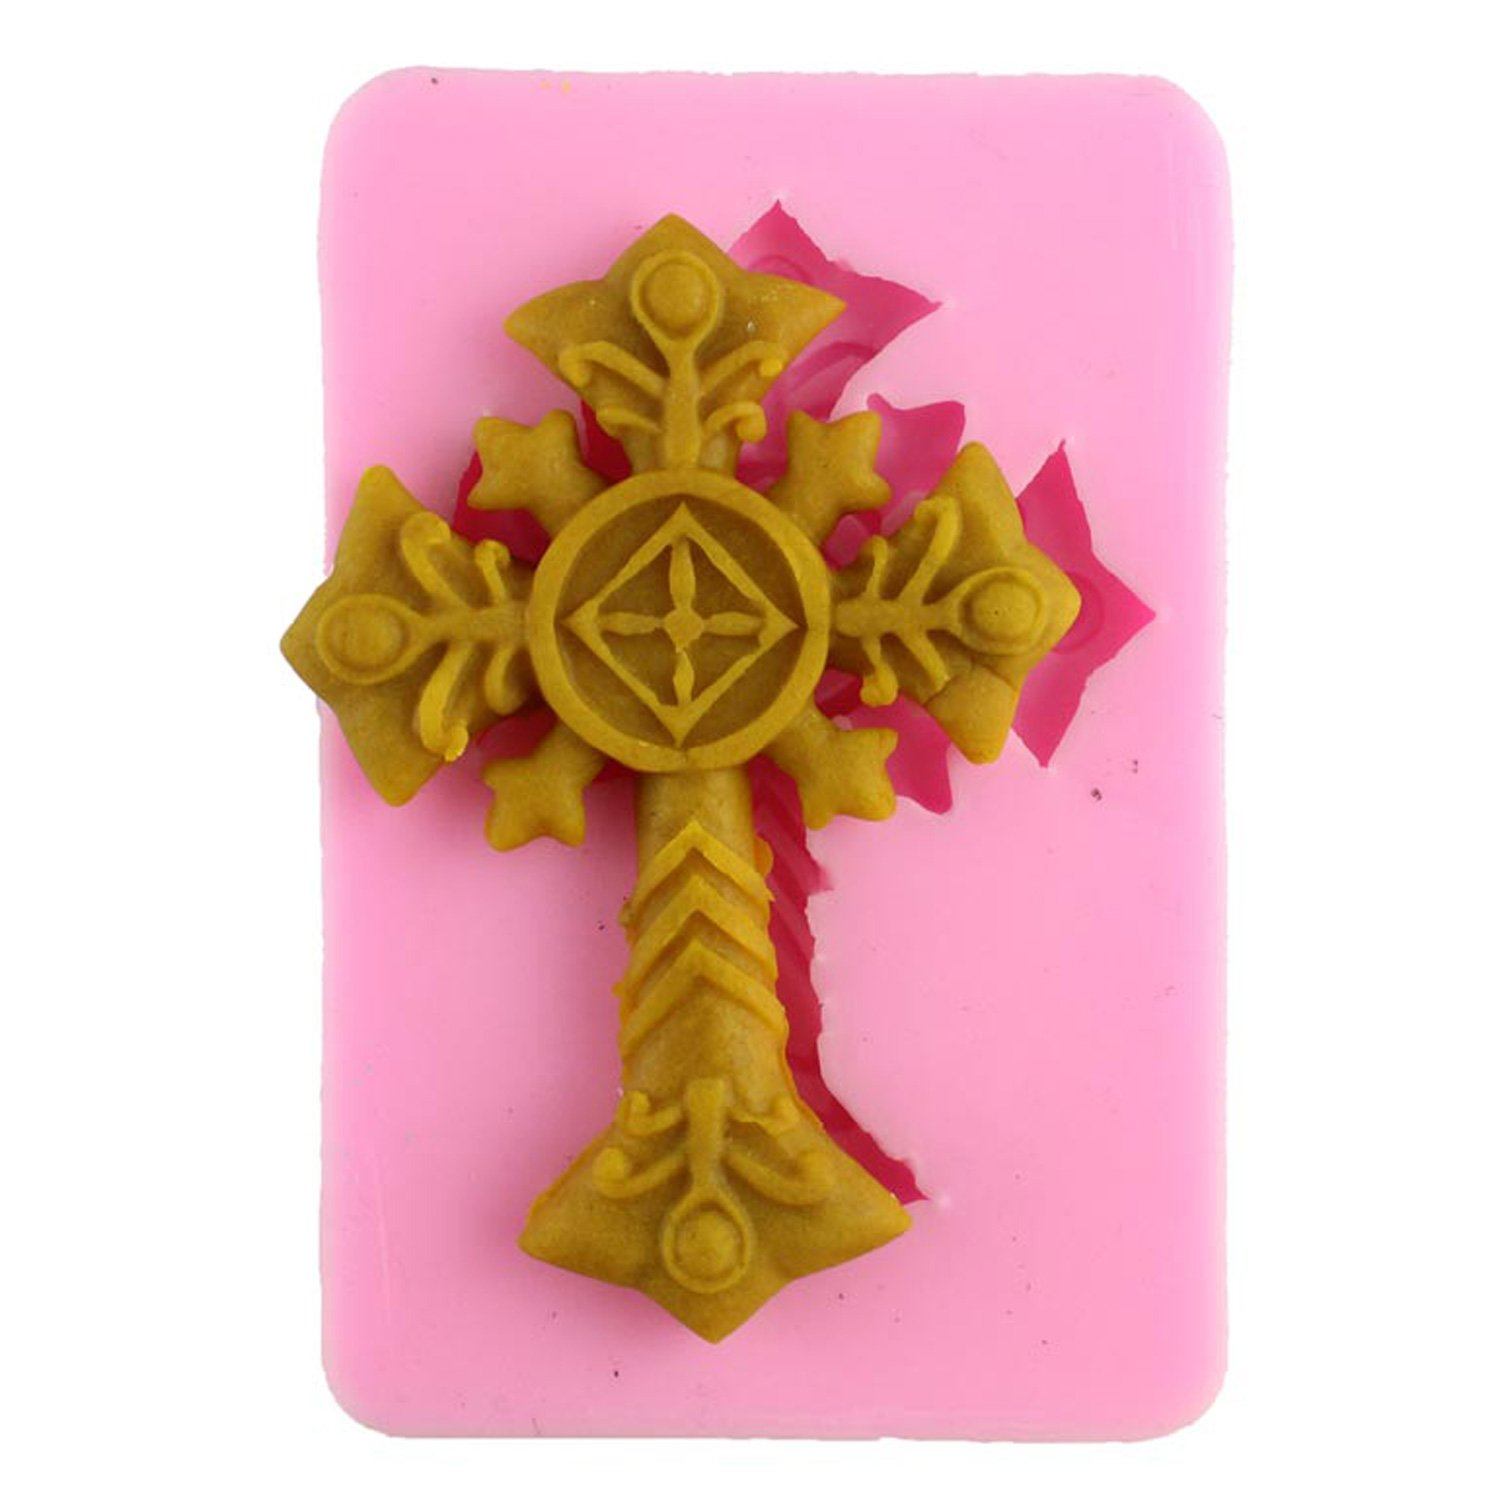 Cheap Ceramic Cross Molds, find Ceramic Cross Molds deals on line at